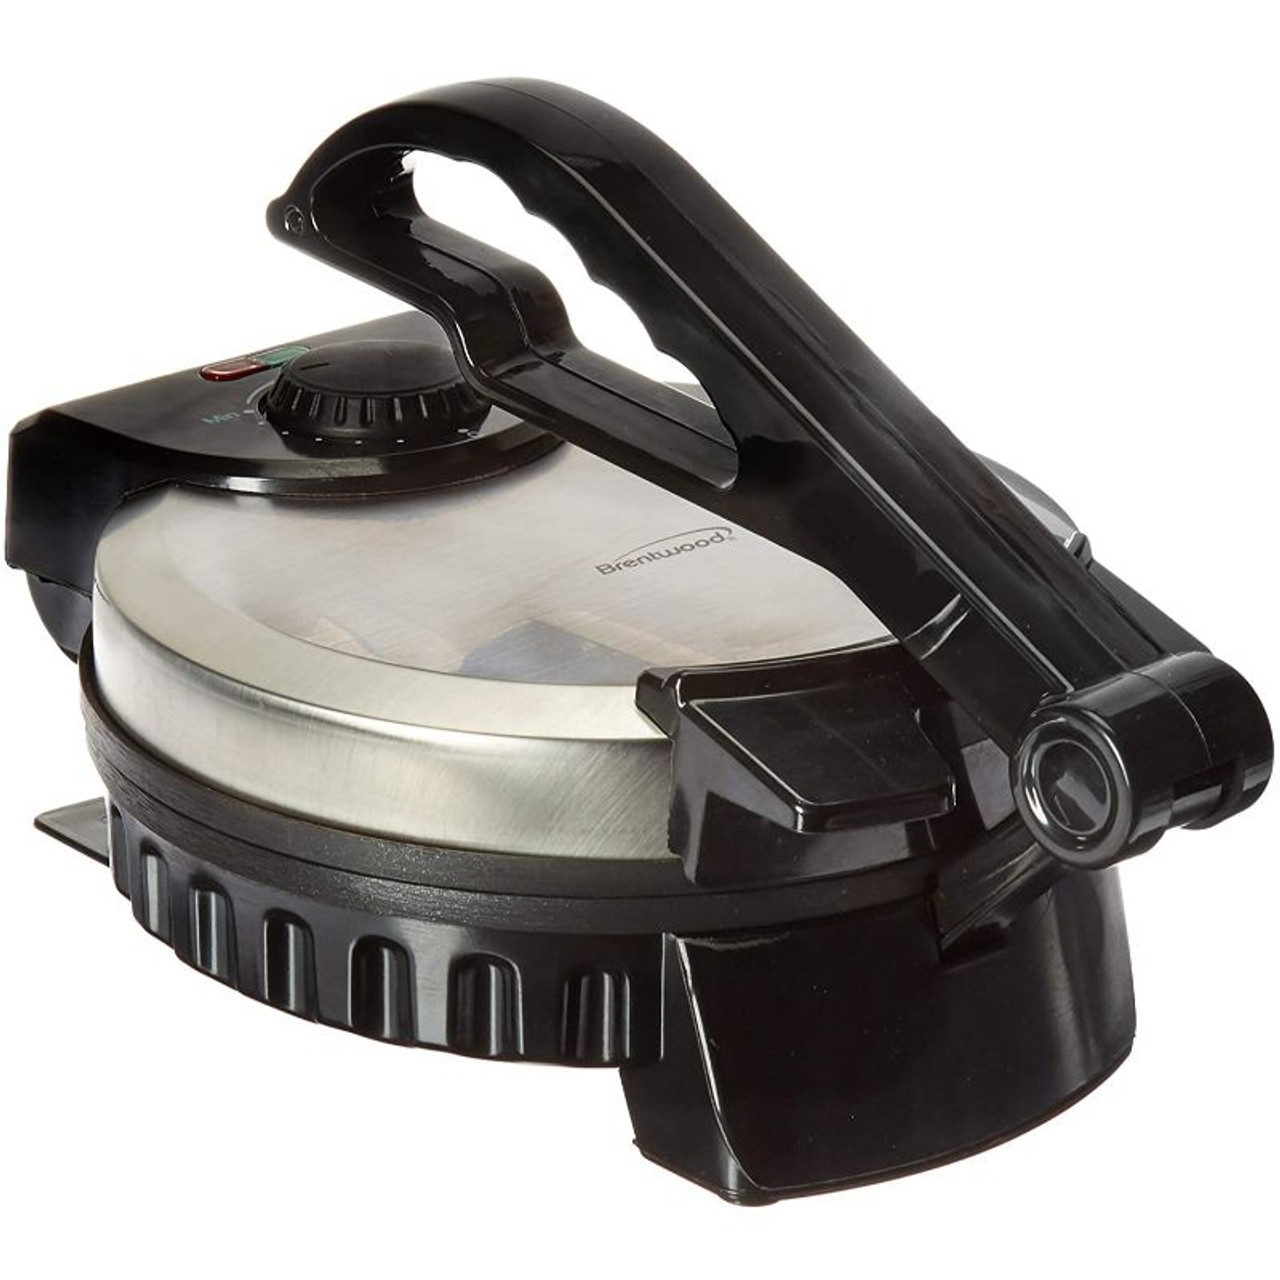 Brentwood Stainless Steel Non-Stick Electric Tortilla Maker, 8-Inch